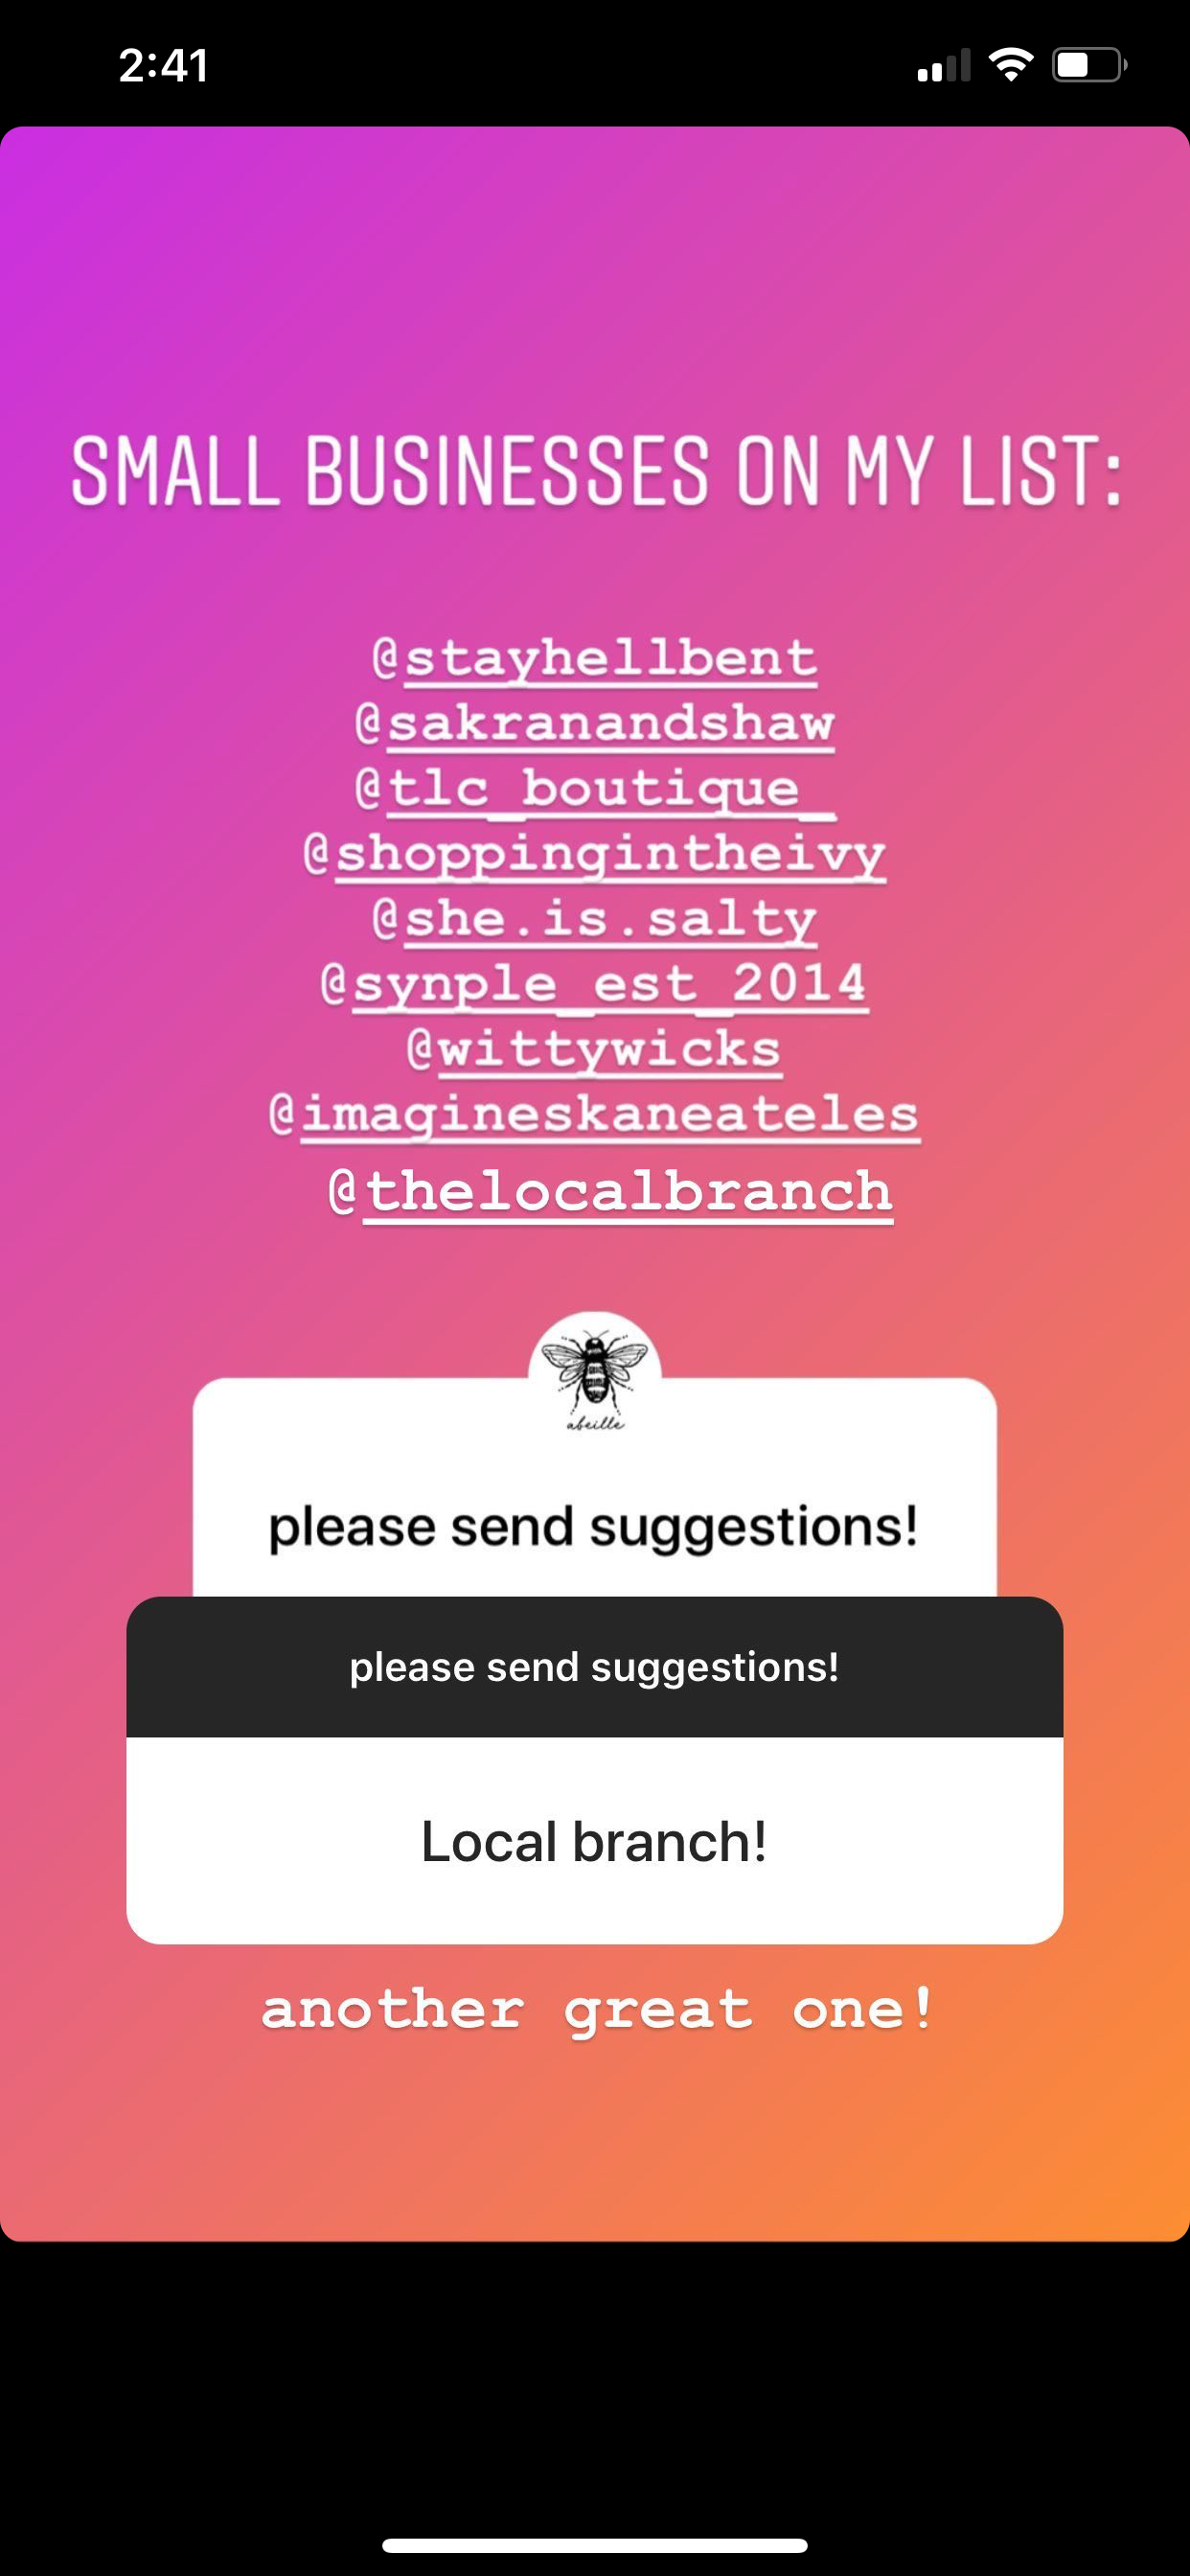 Abeille's Instagram story with giveback list